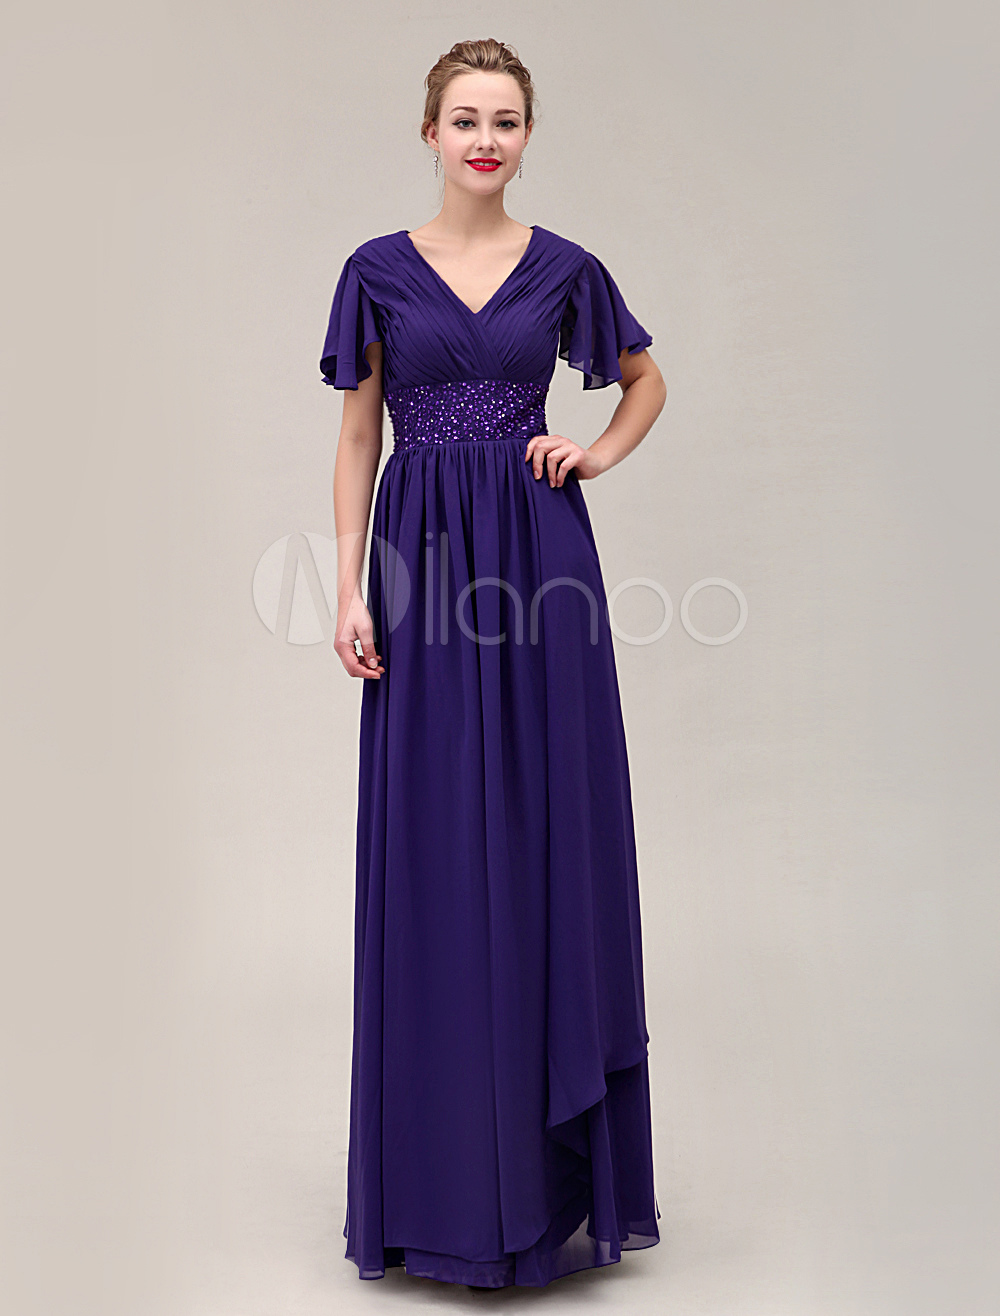 Beading Deep V-Neck Floor-Length Chiffon Dress For Mother Of The Bride With Butterfly Sleeves $129.99 AT vintagedancer.com